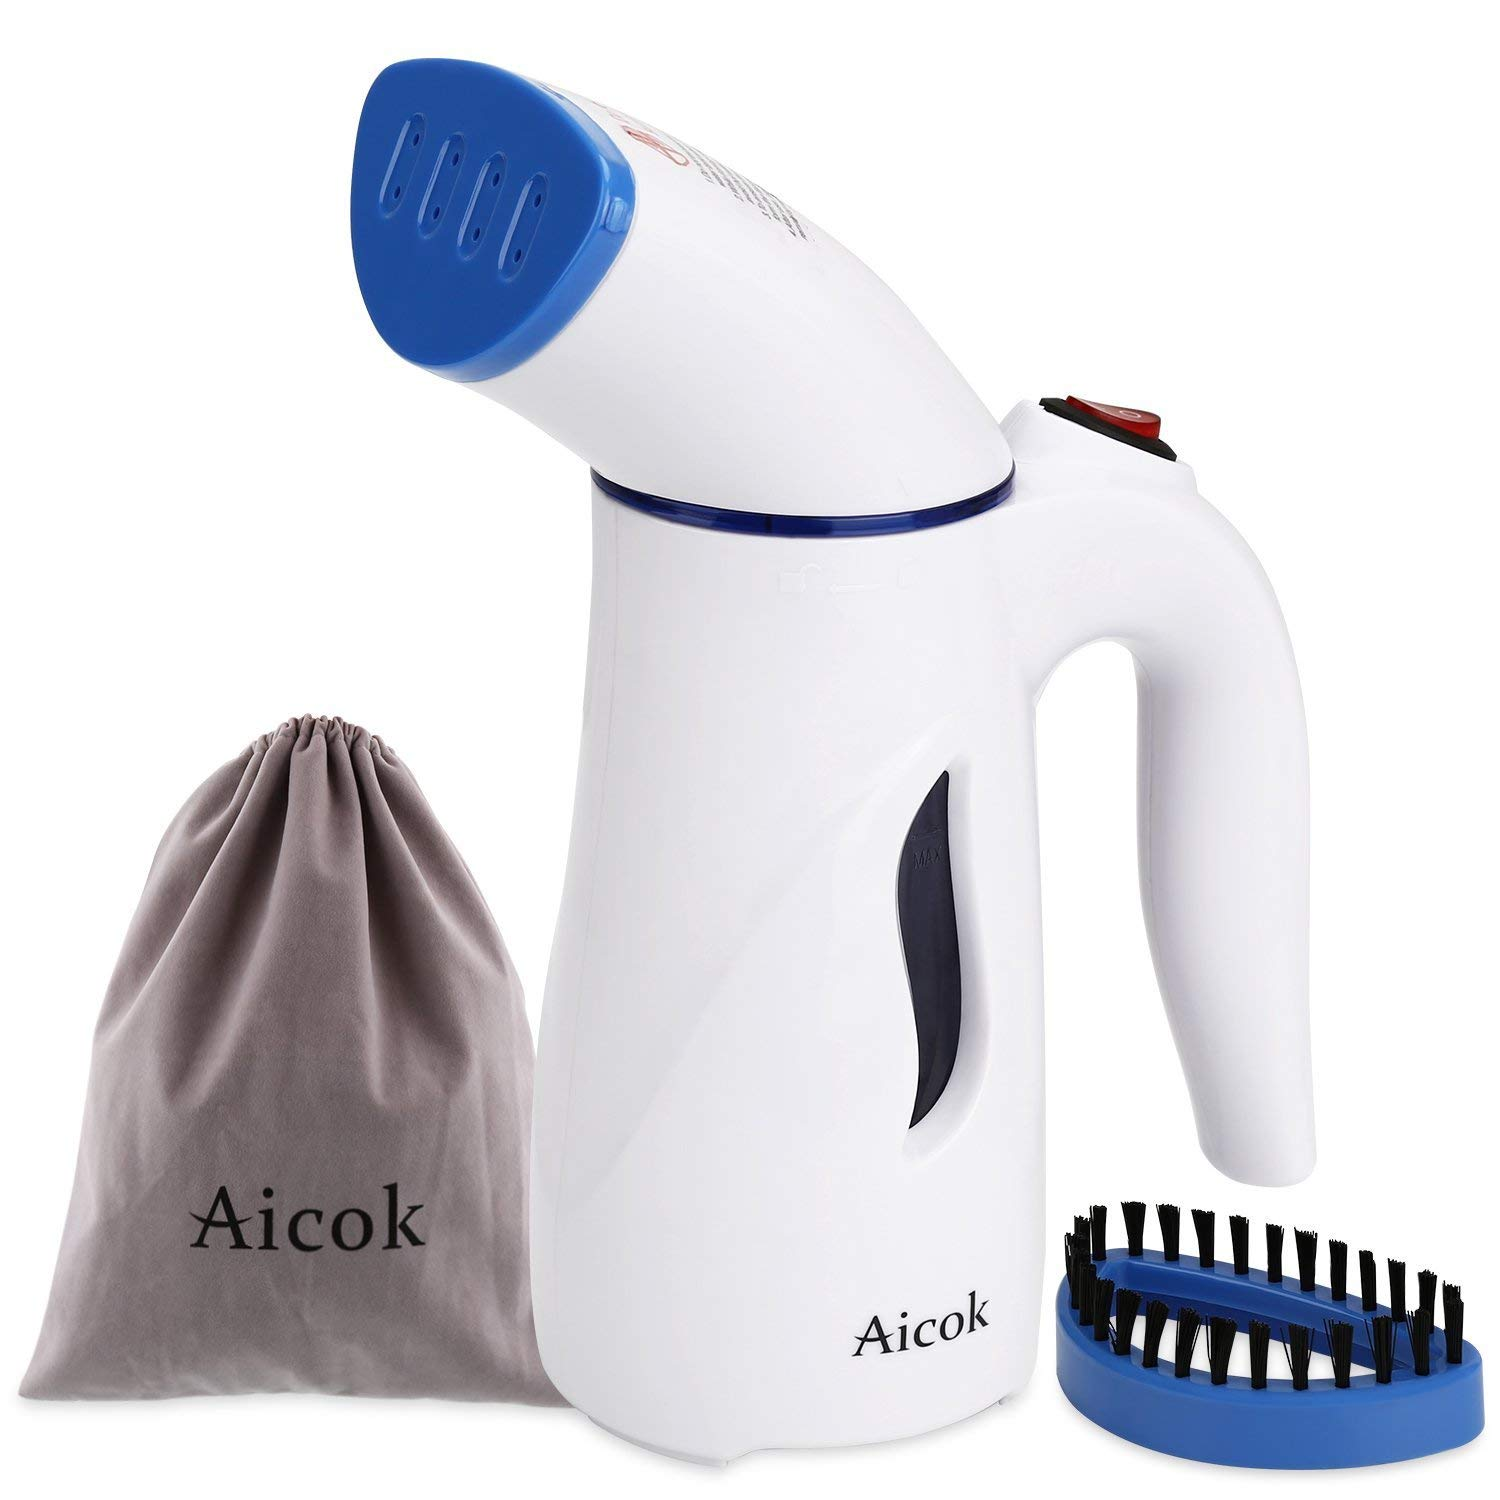 Clothes Steamer, Aicok Handheld Garment Steamers